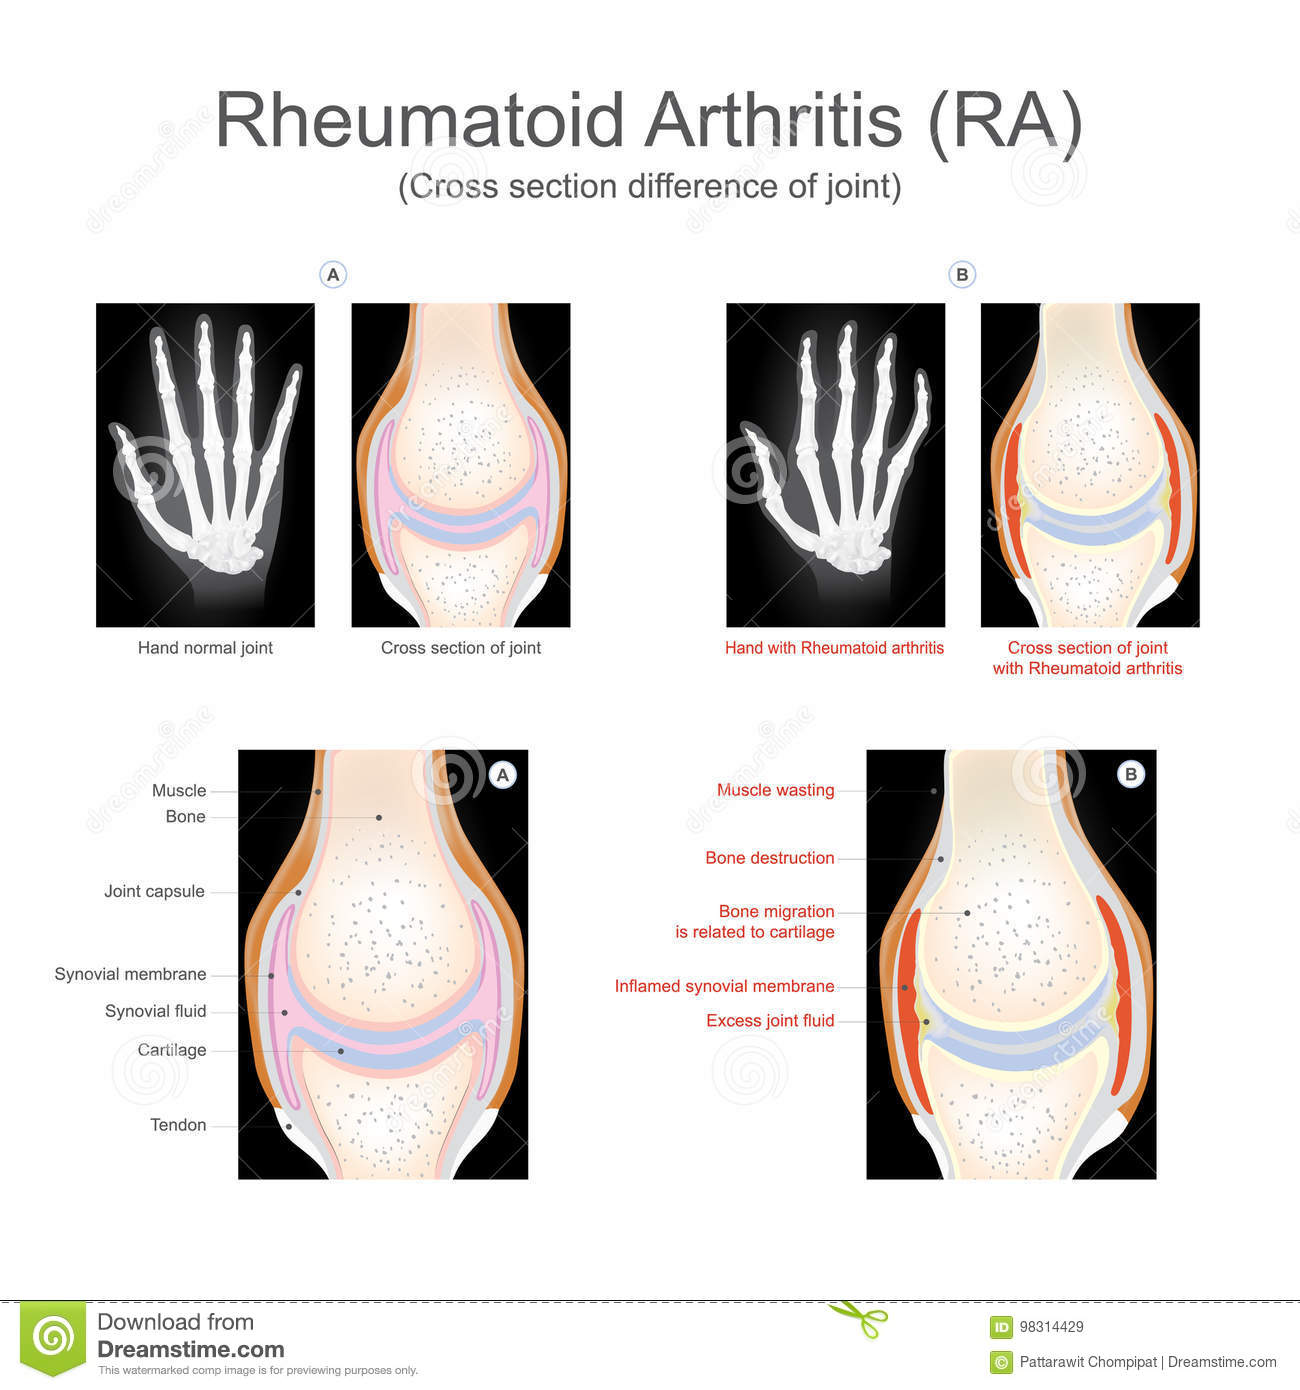 Rheumatoid Cartoons, Illustrations & Vector Stock Images. Car Insurance Quotes Online Four Oaks Bank. Online Interior Decorating Courses. Vanity Toll Free Search Online Robotics Course. Best Psychology Schools In California. Enterprise Storage Cost Per Tb. Cash Advance 4 Business Fau Doctoral Programs. D West Motivational Speaker Plank Pose Yoga. John Wood Water Heater Problems